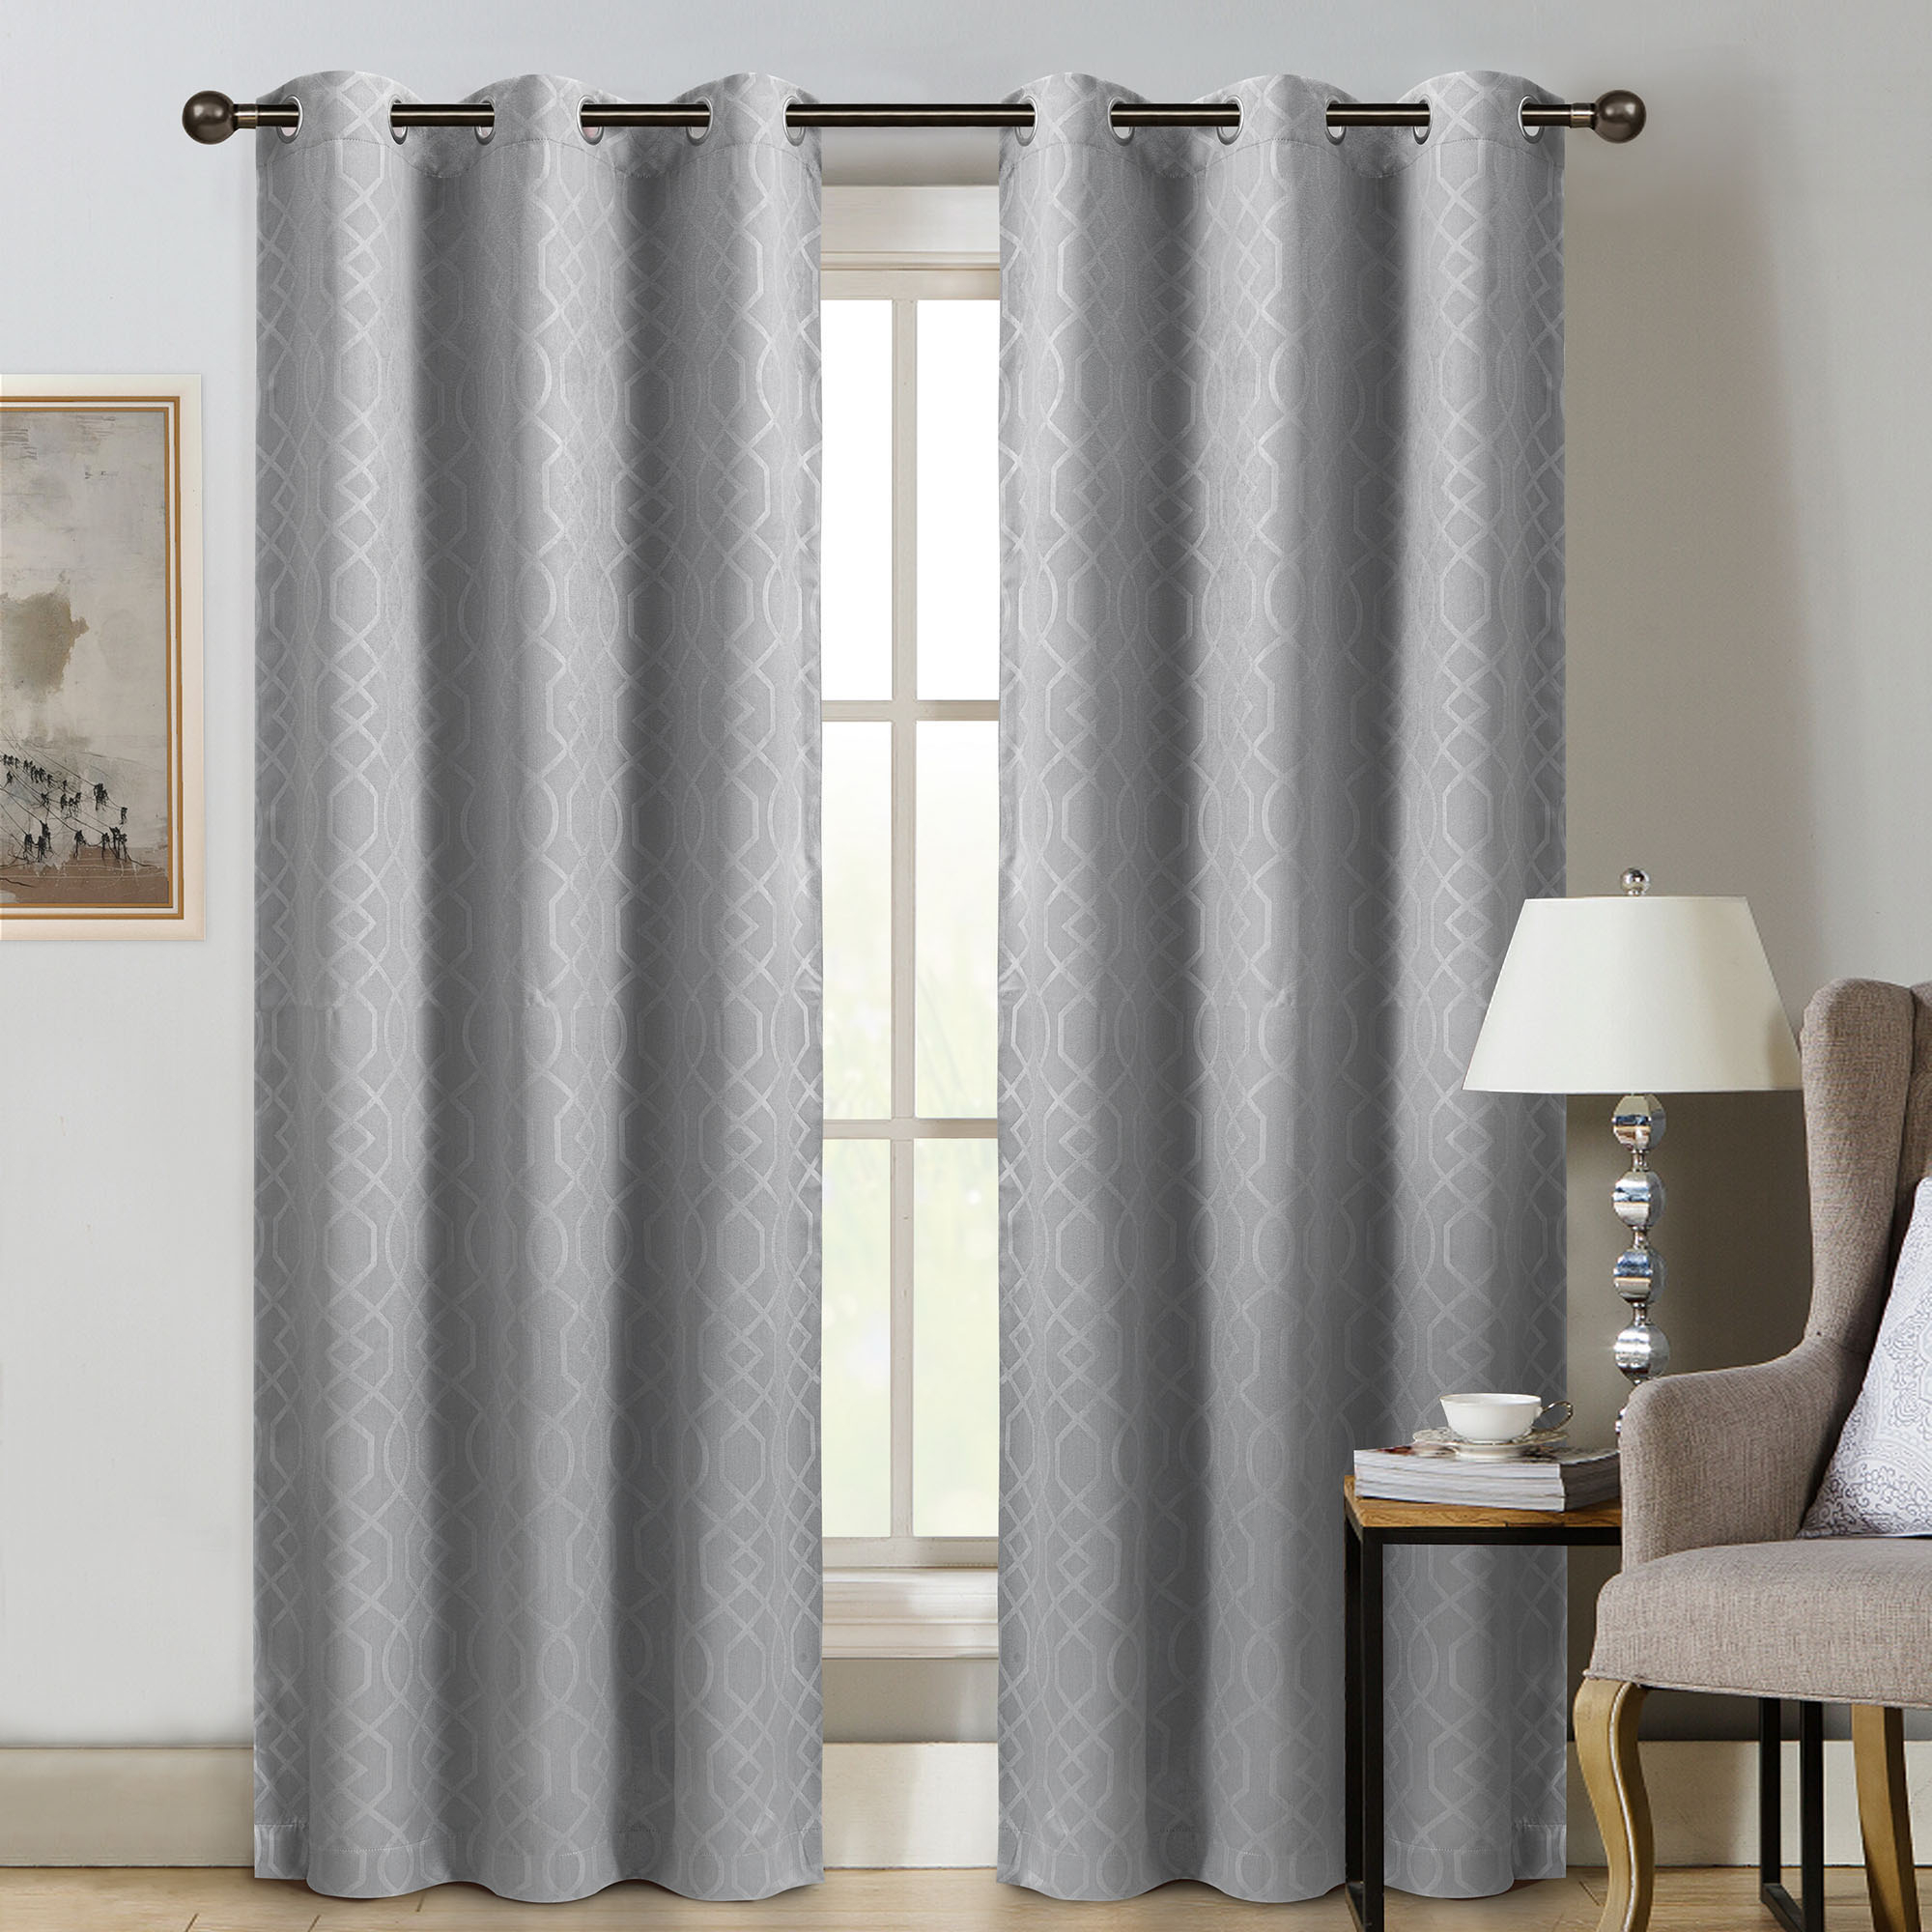 """Embossed Thermal Weaved Blackout Grommet Drapery Curtains Throughout Most Current Sun+block Thermal Weave Embossed Blackout Grommet Single Curtain Panel 42""""x84"""" (View 5 of 20)"""